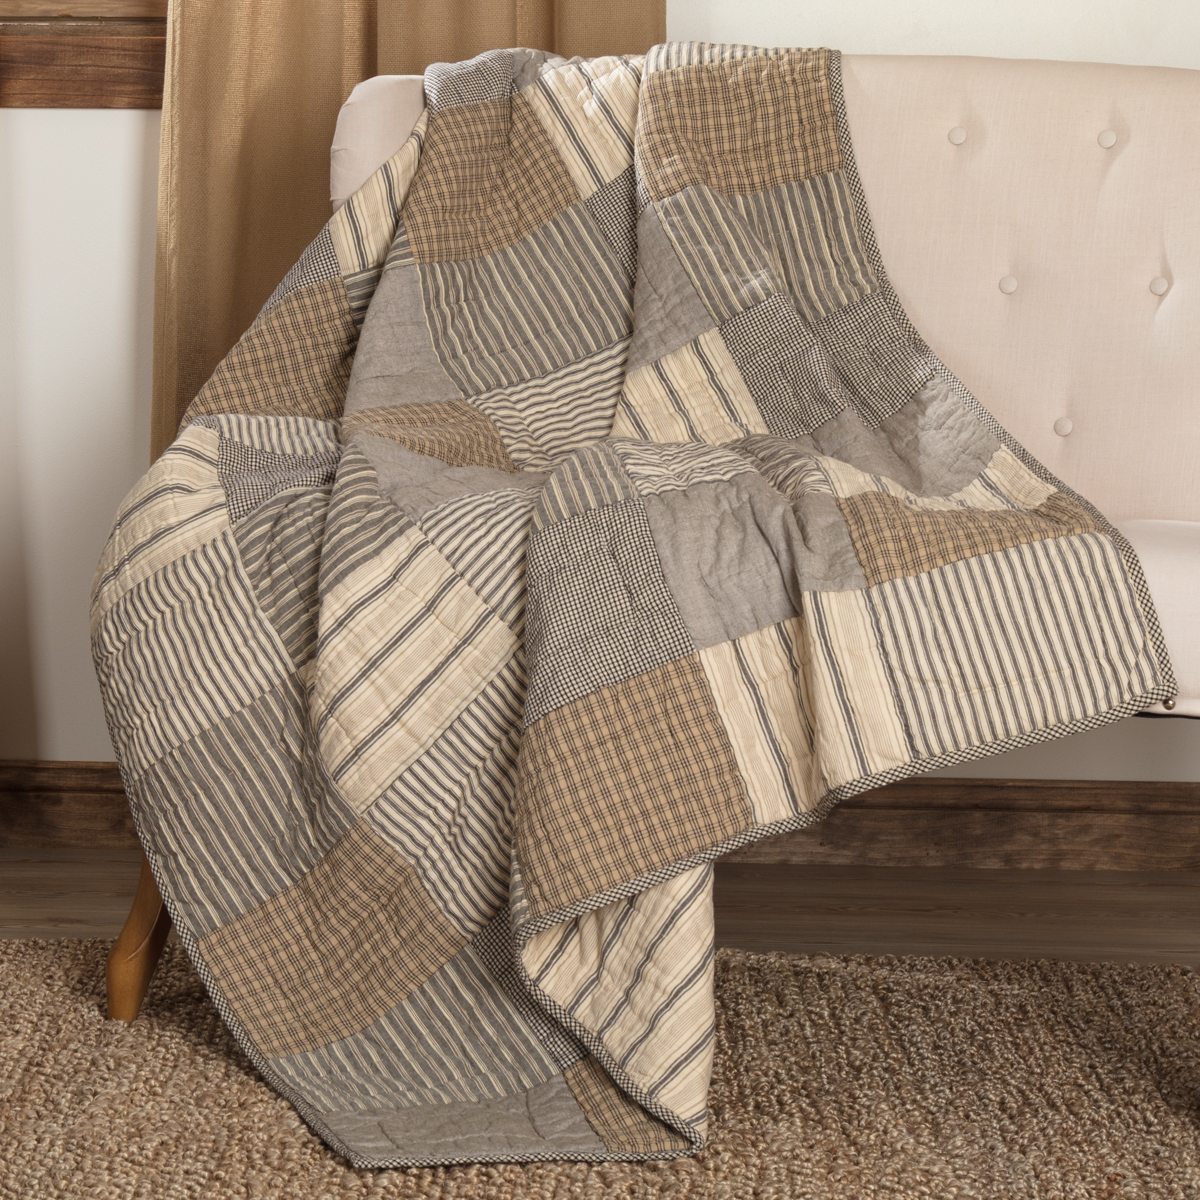 Sawyer Mill Charcoal Block Quilted Throw 60x50